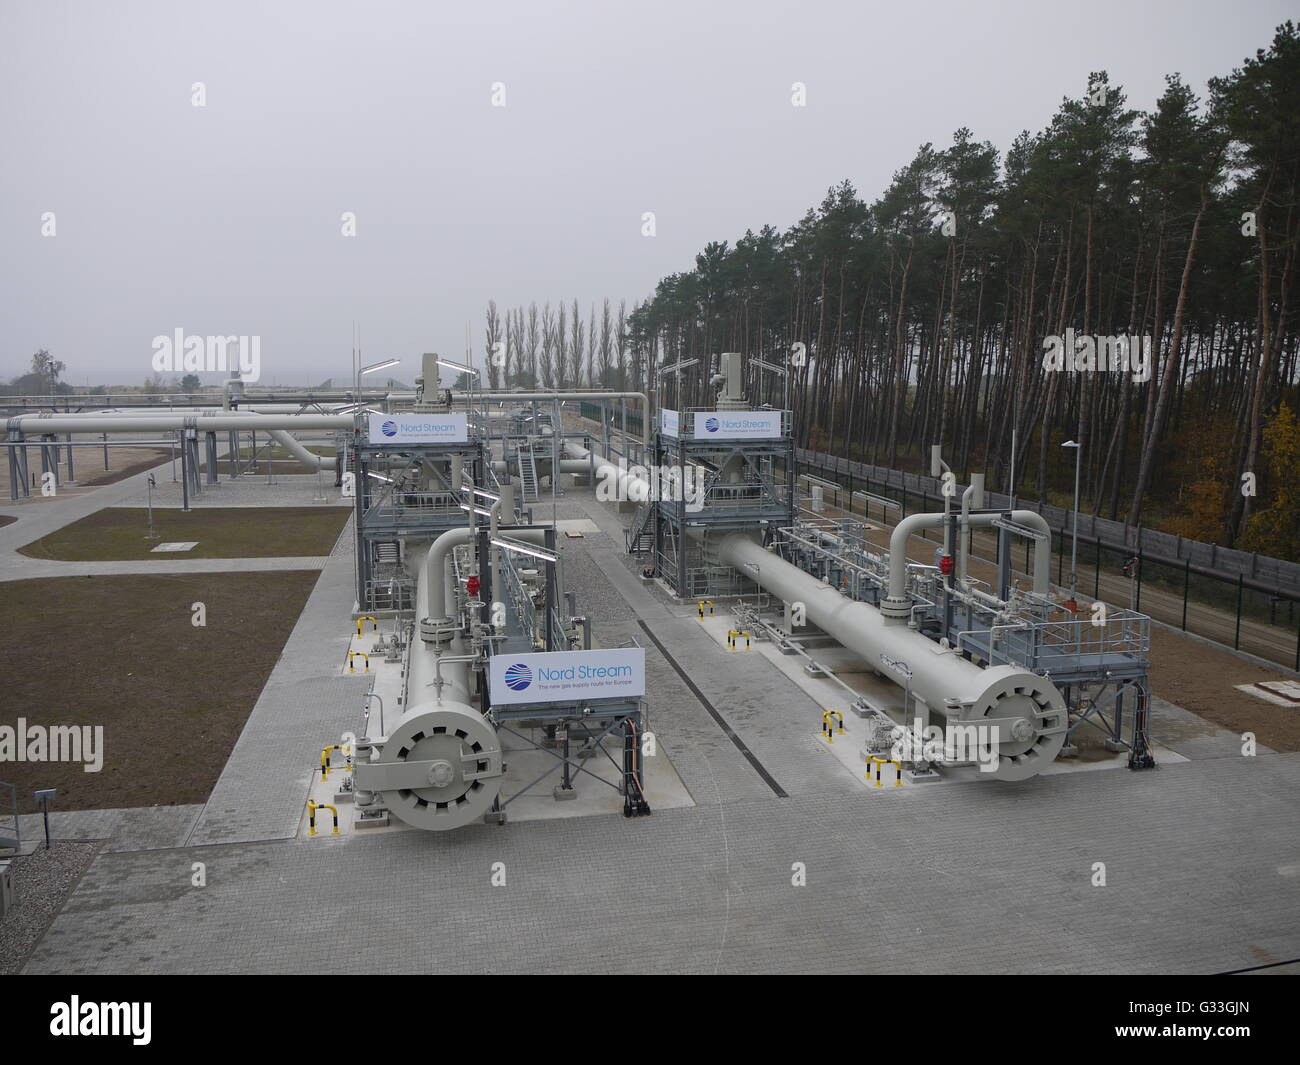 Nord Stream gas pipe terminal in north of Germany - Stock Image